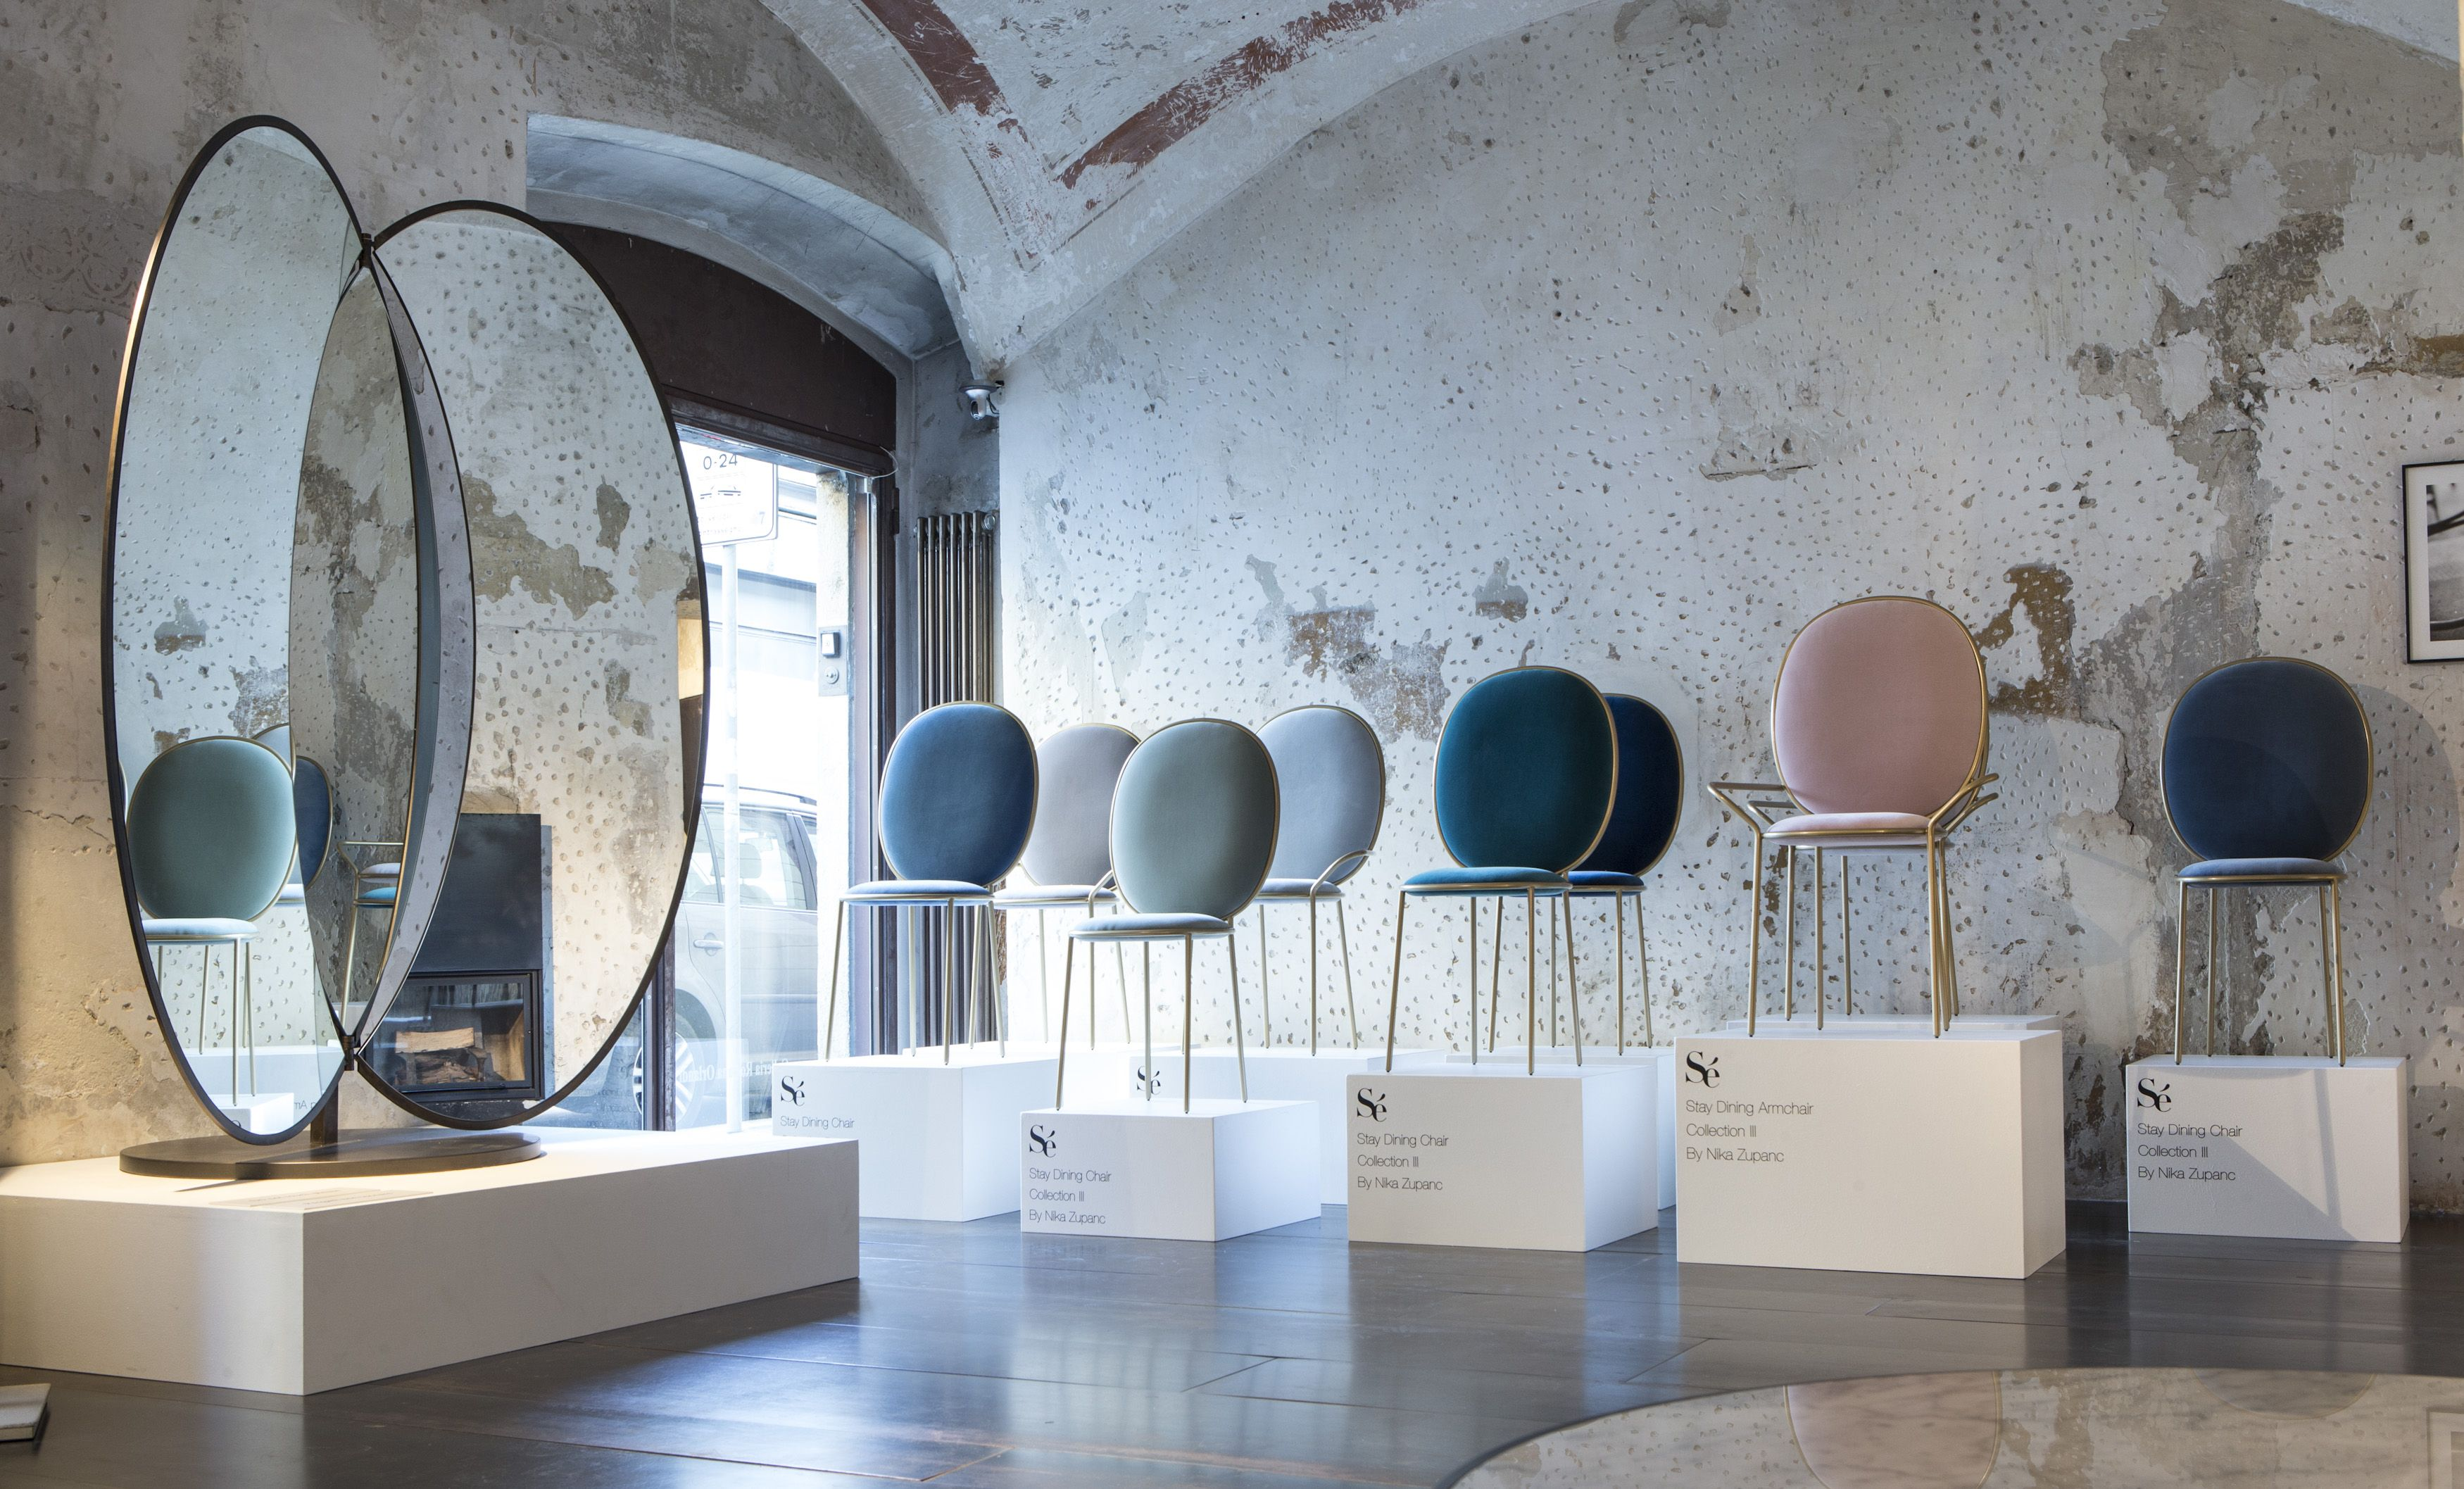 Olympia Freestanding Mirror, Stay Chairs   Sé At Spazio Rossana Orlandi,  Milan 2015